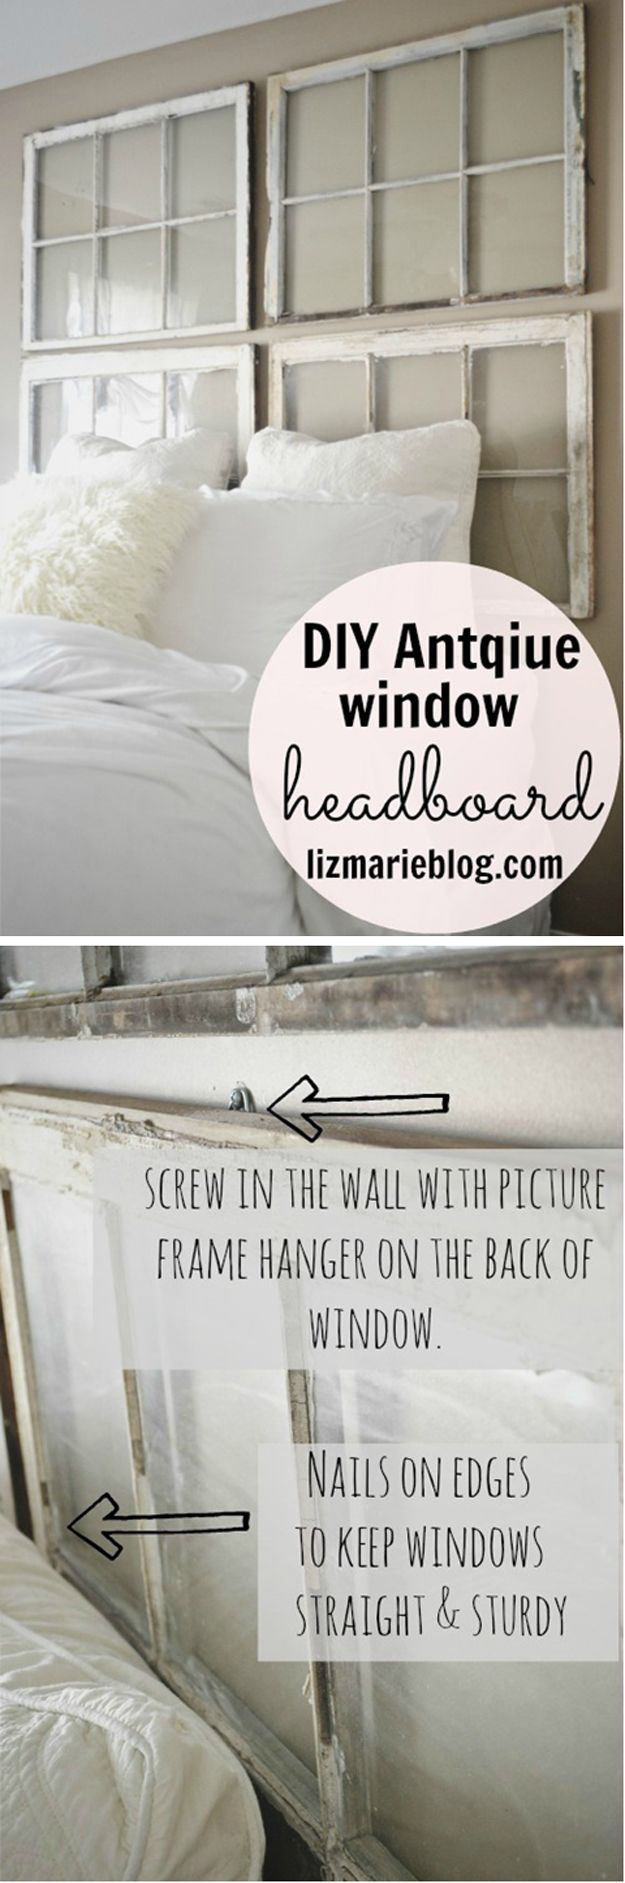 Window Headboard Tutorial | DIY Antique Window Headboard by DIY Ready at http://diyready.com/diy-headboards-for-every-home/